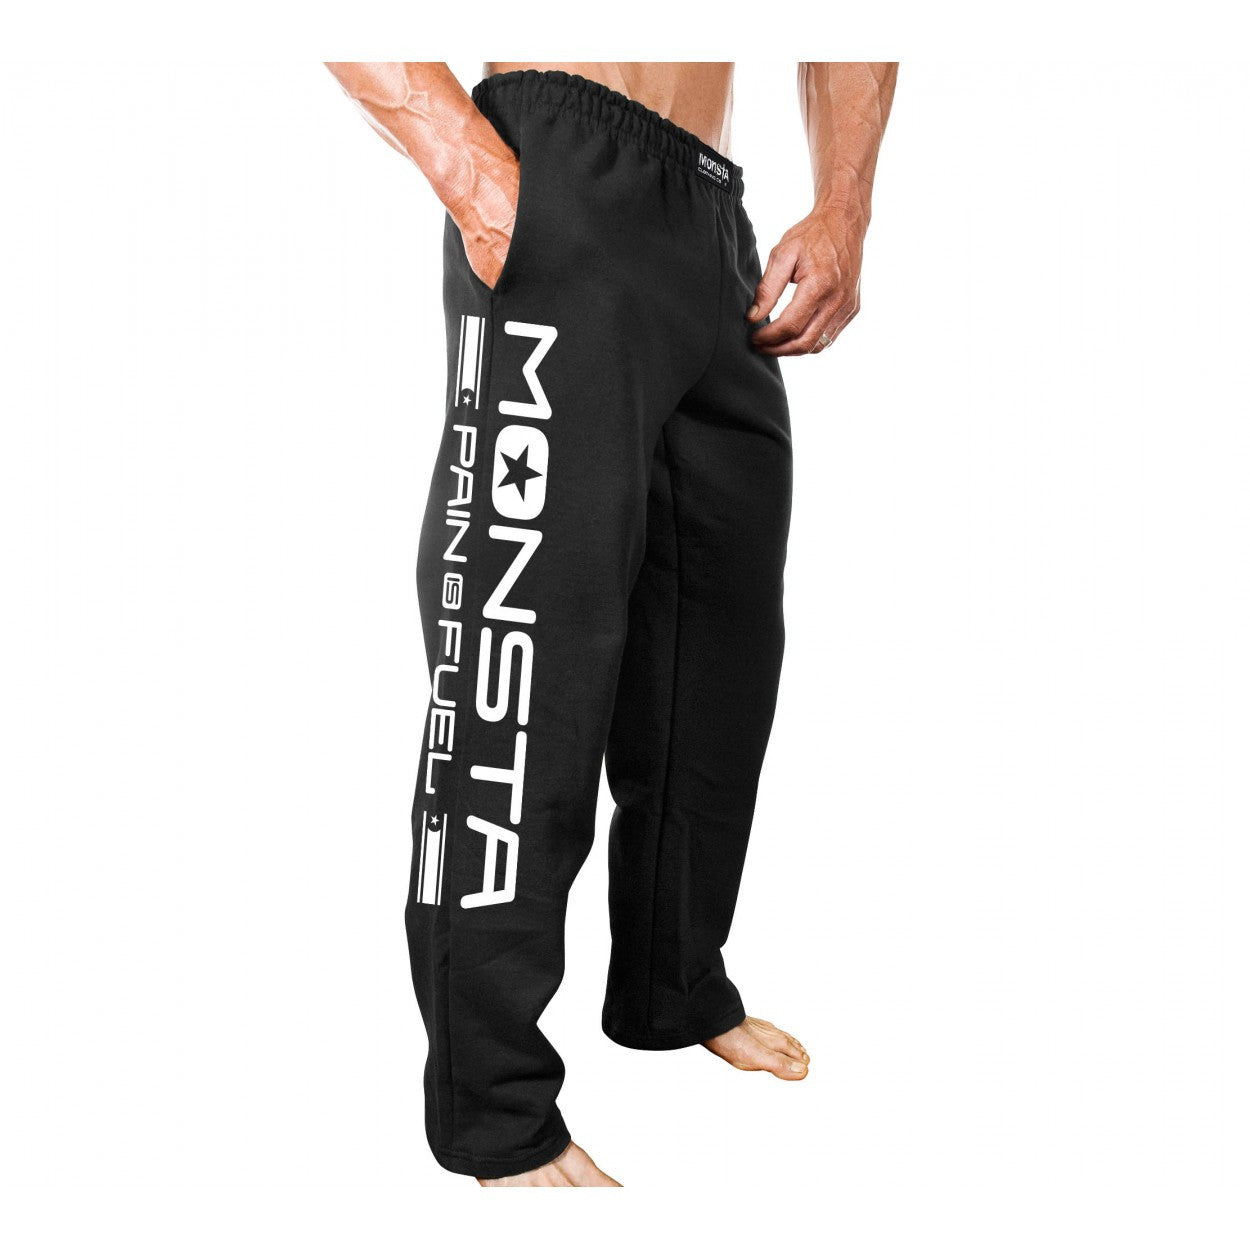 SWEATPANTS: MONSTA PAIN IS FUEL-284 - Monsta Clothing Australia